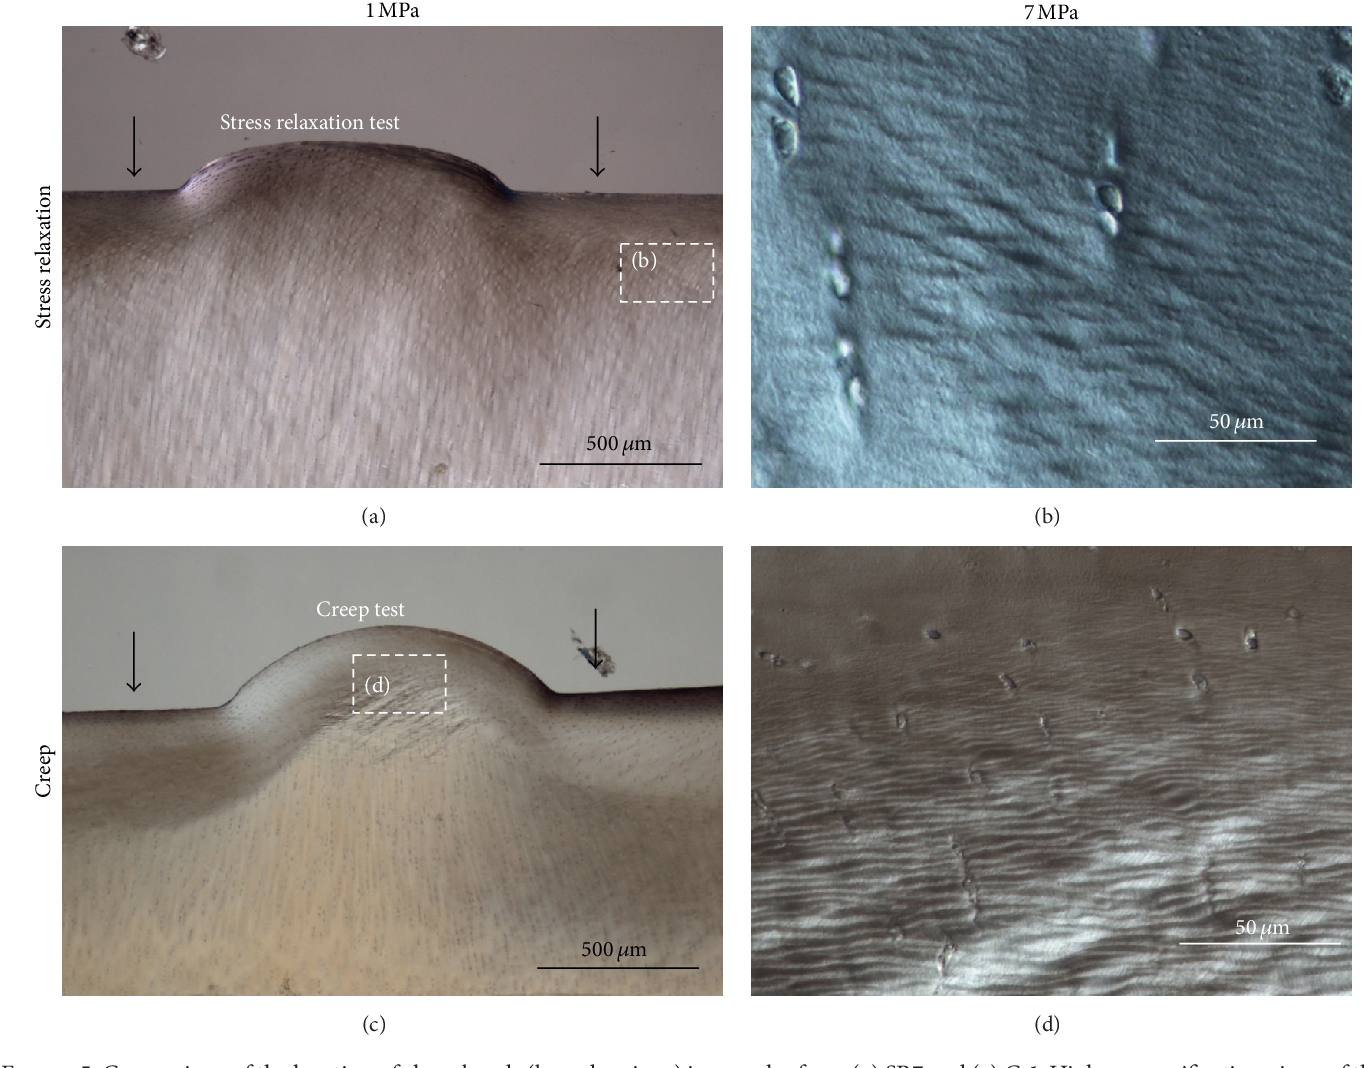 Figure 5: Comparison of the location of shear bands (boxed regions) in samples from (a) SR7 and (c) Cr1. Higher magnification views of the boxed regions are shown in (b) and (d), respectively. DIC imaging.